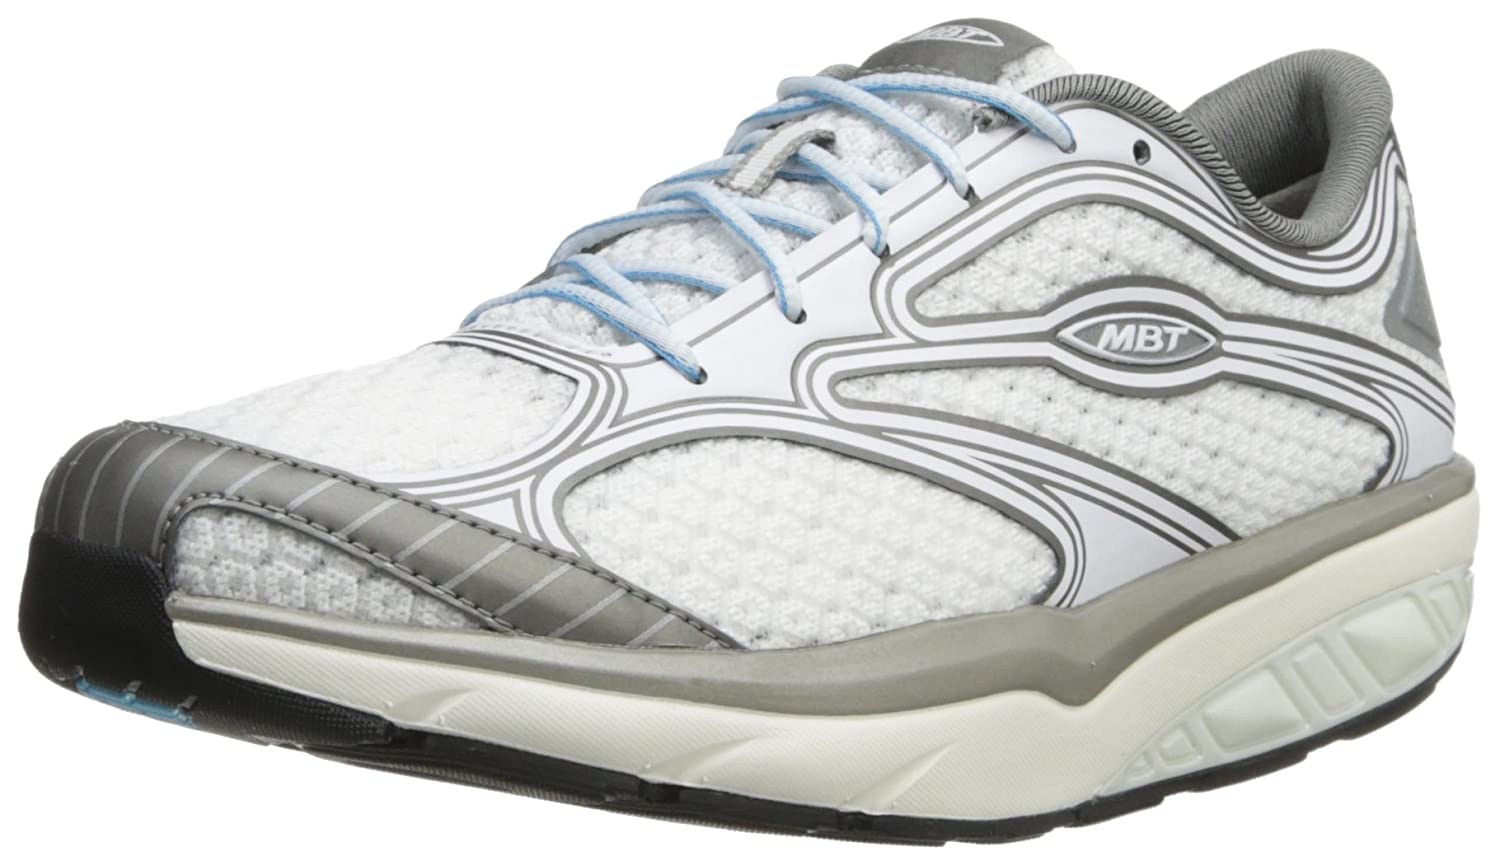 d508928e1ce2 outlet MBT Women s Afiya Lace Athletic Shoe - infocursosdf.com.br